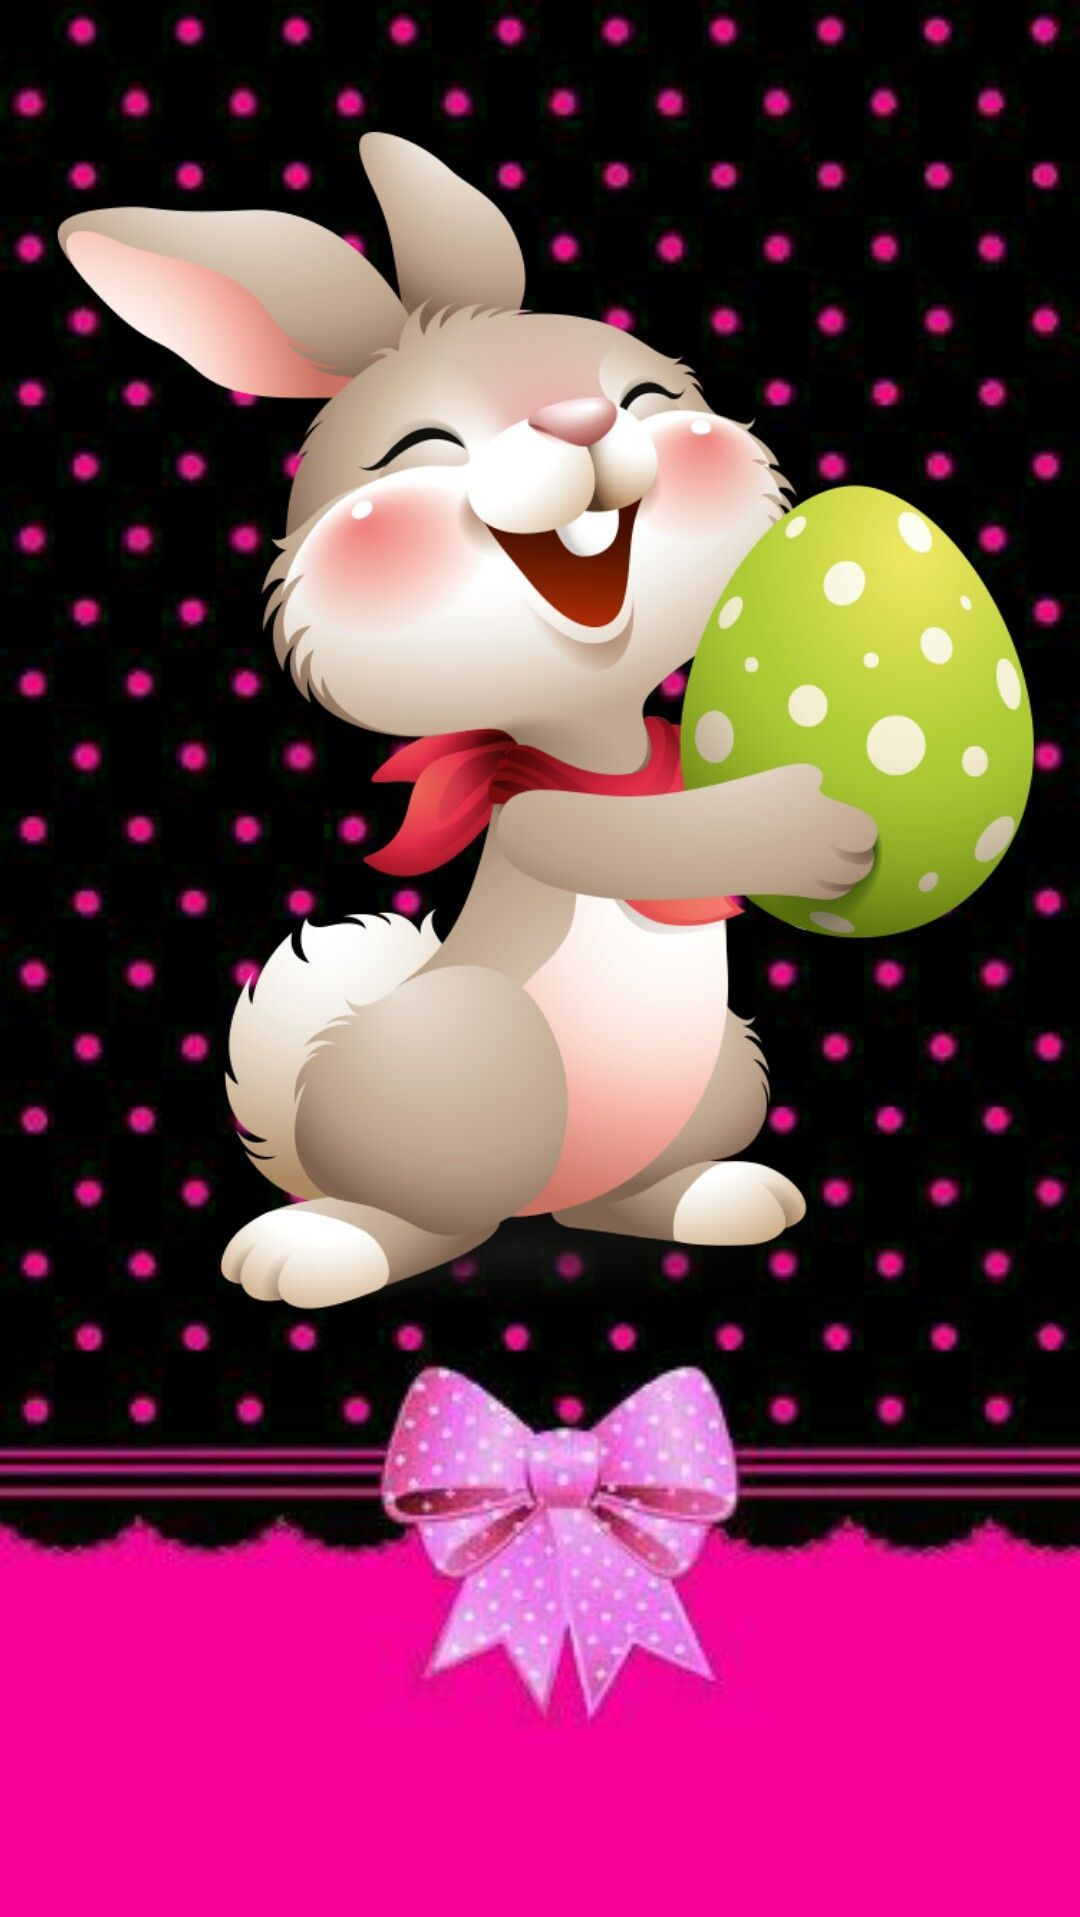 Samsung Wallpaper Android Hintergrundbild Tapete Easter Bunny Easter Wallpaper Happy Easter Wallpaper Easter Bunny Pictures